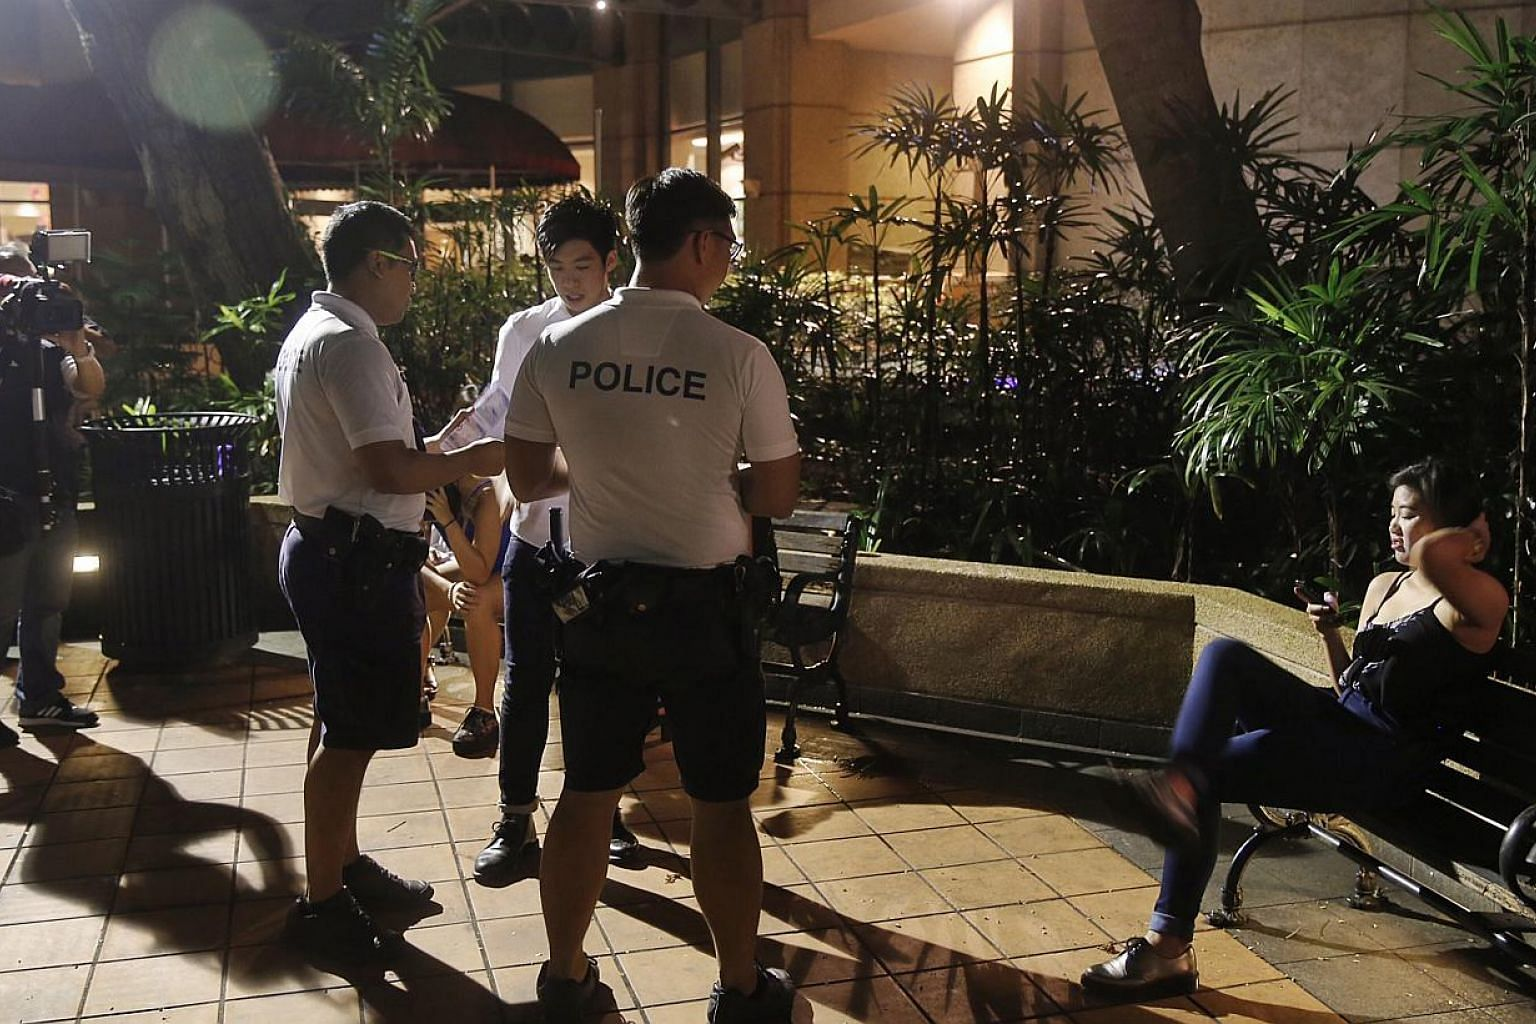 Police officers handing out pamphlets at Robertson Quay on Wednesday. The Ministry of Home Affairs has welcomed initiatives by the liquor industry in support of the new alcohol law which kicked in on Wednesday. -- ST PHOTO: KEVIN LIM